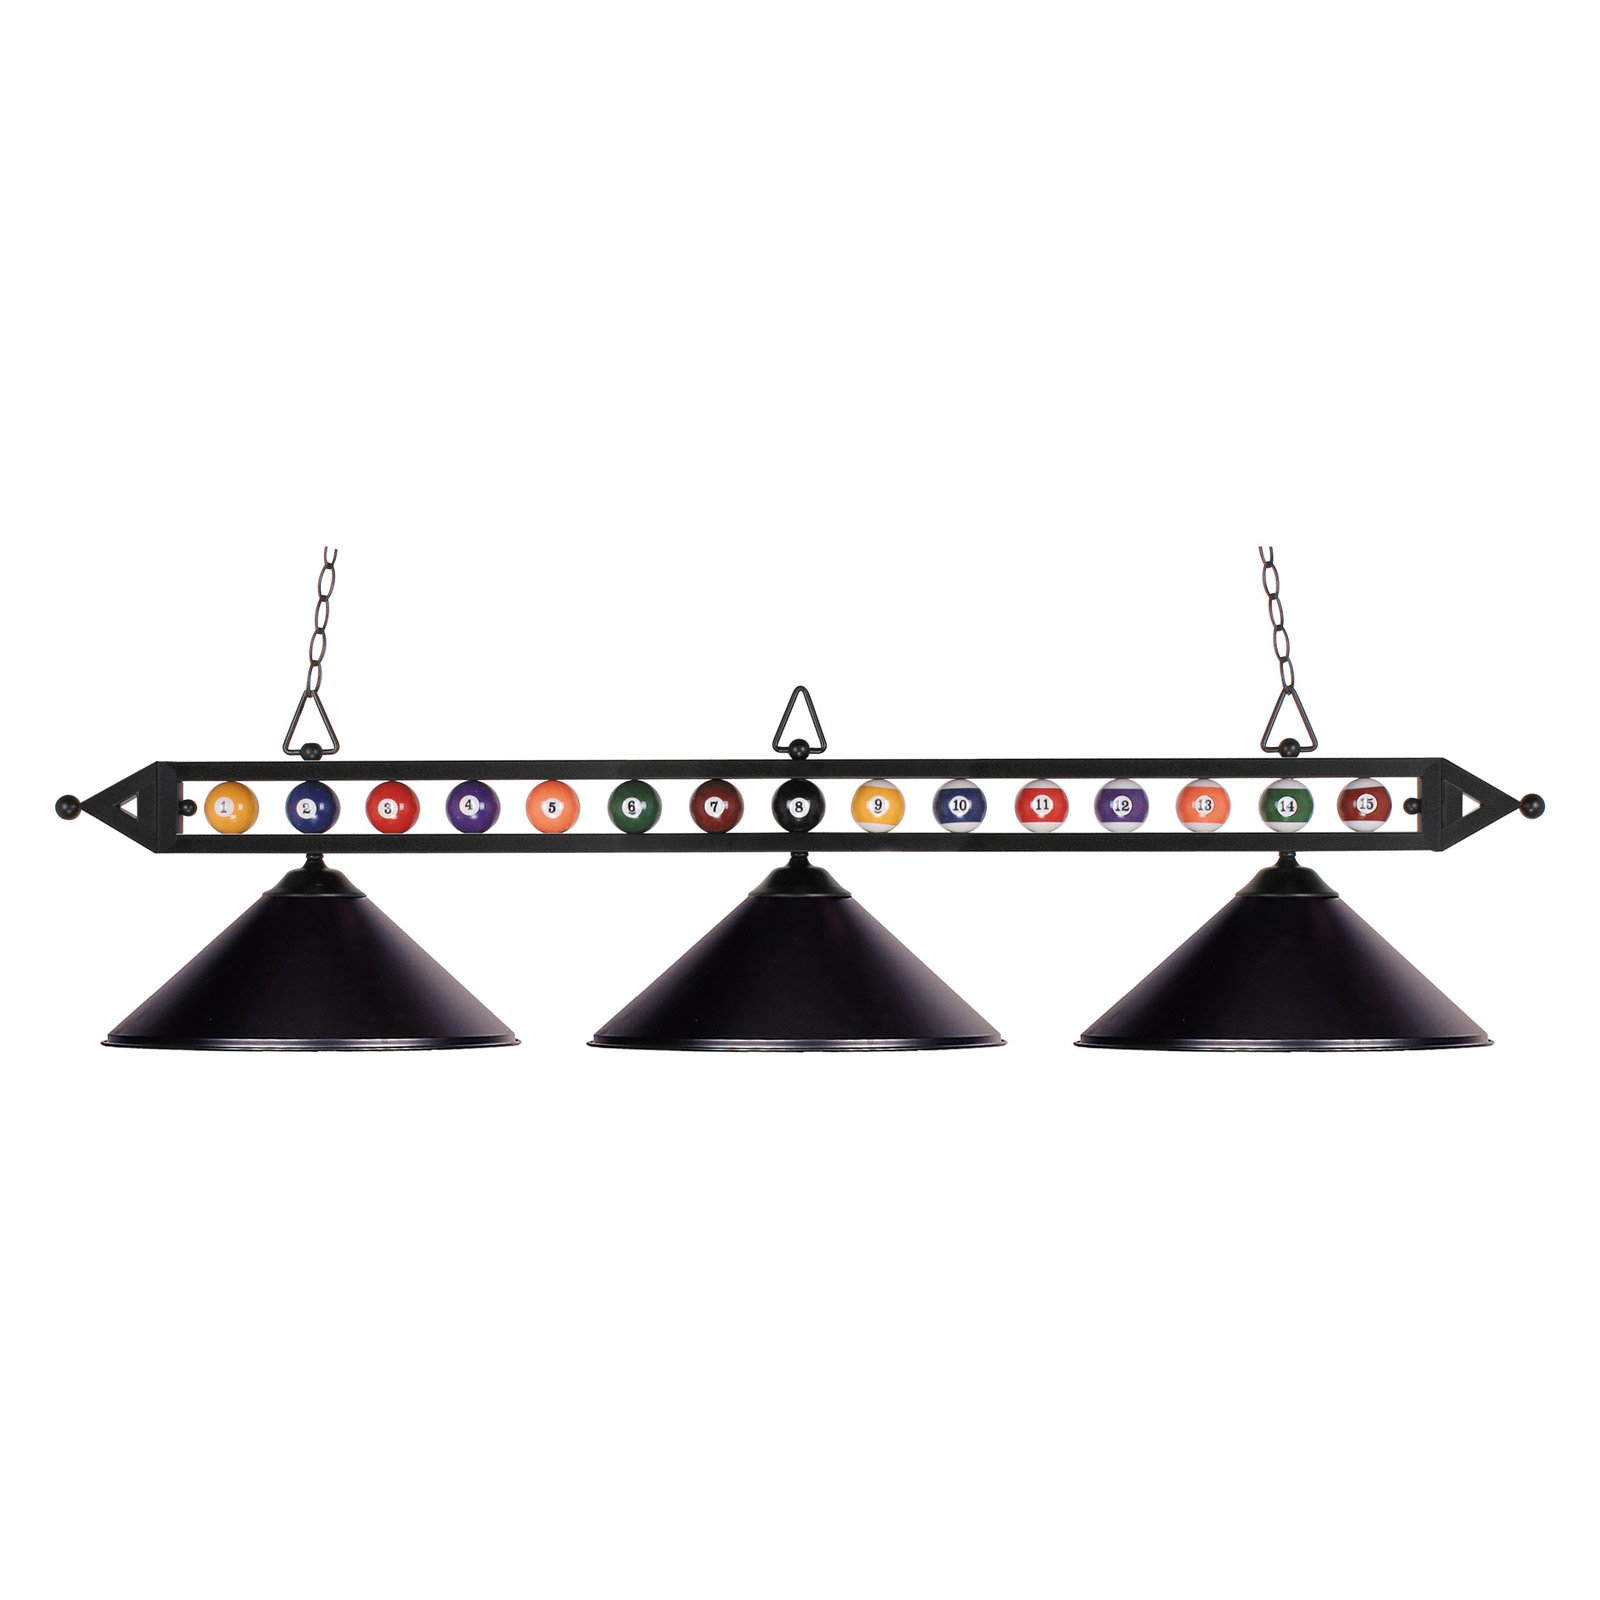 ELK Lighting Carver Pool Table Light by Landmark Lighting